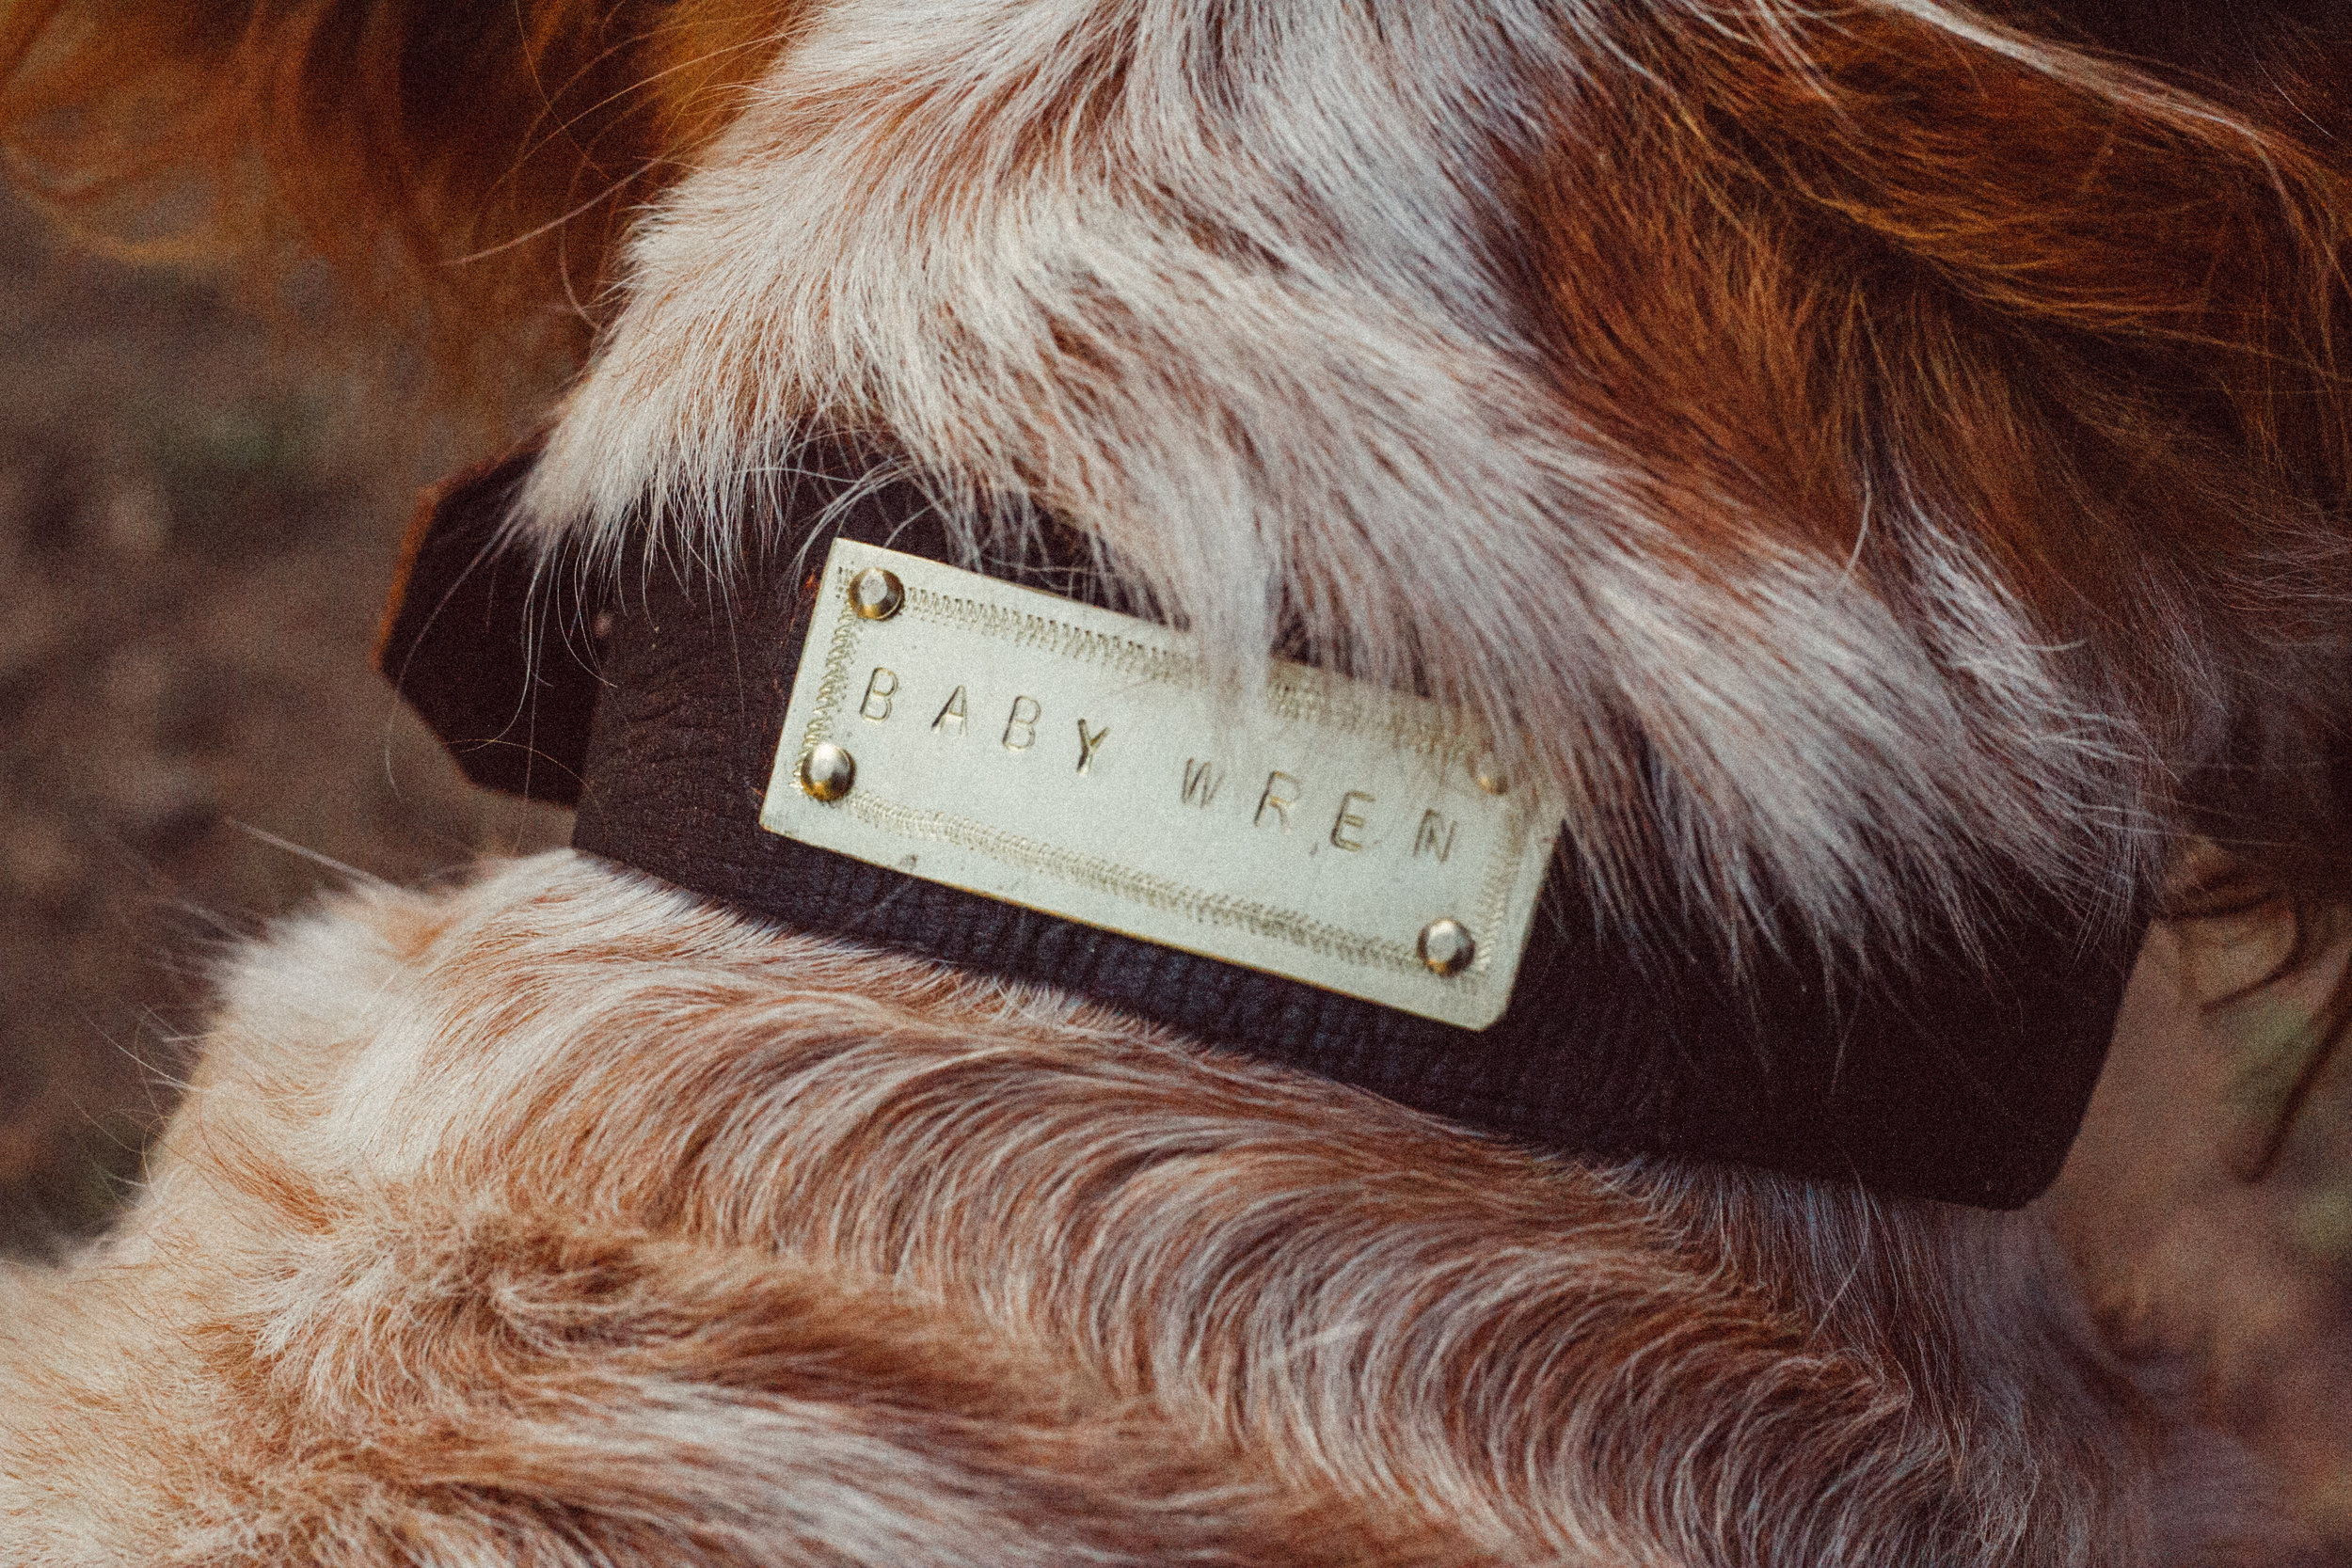 a dog collar made from our bark tanned leather for Wren the dog!